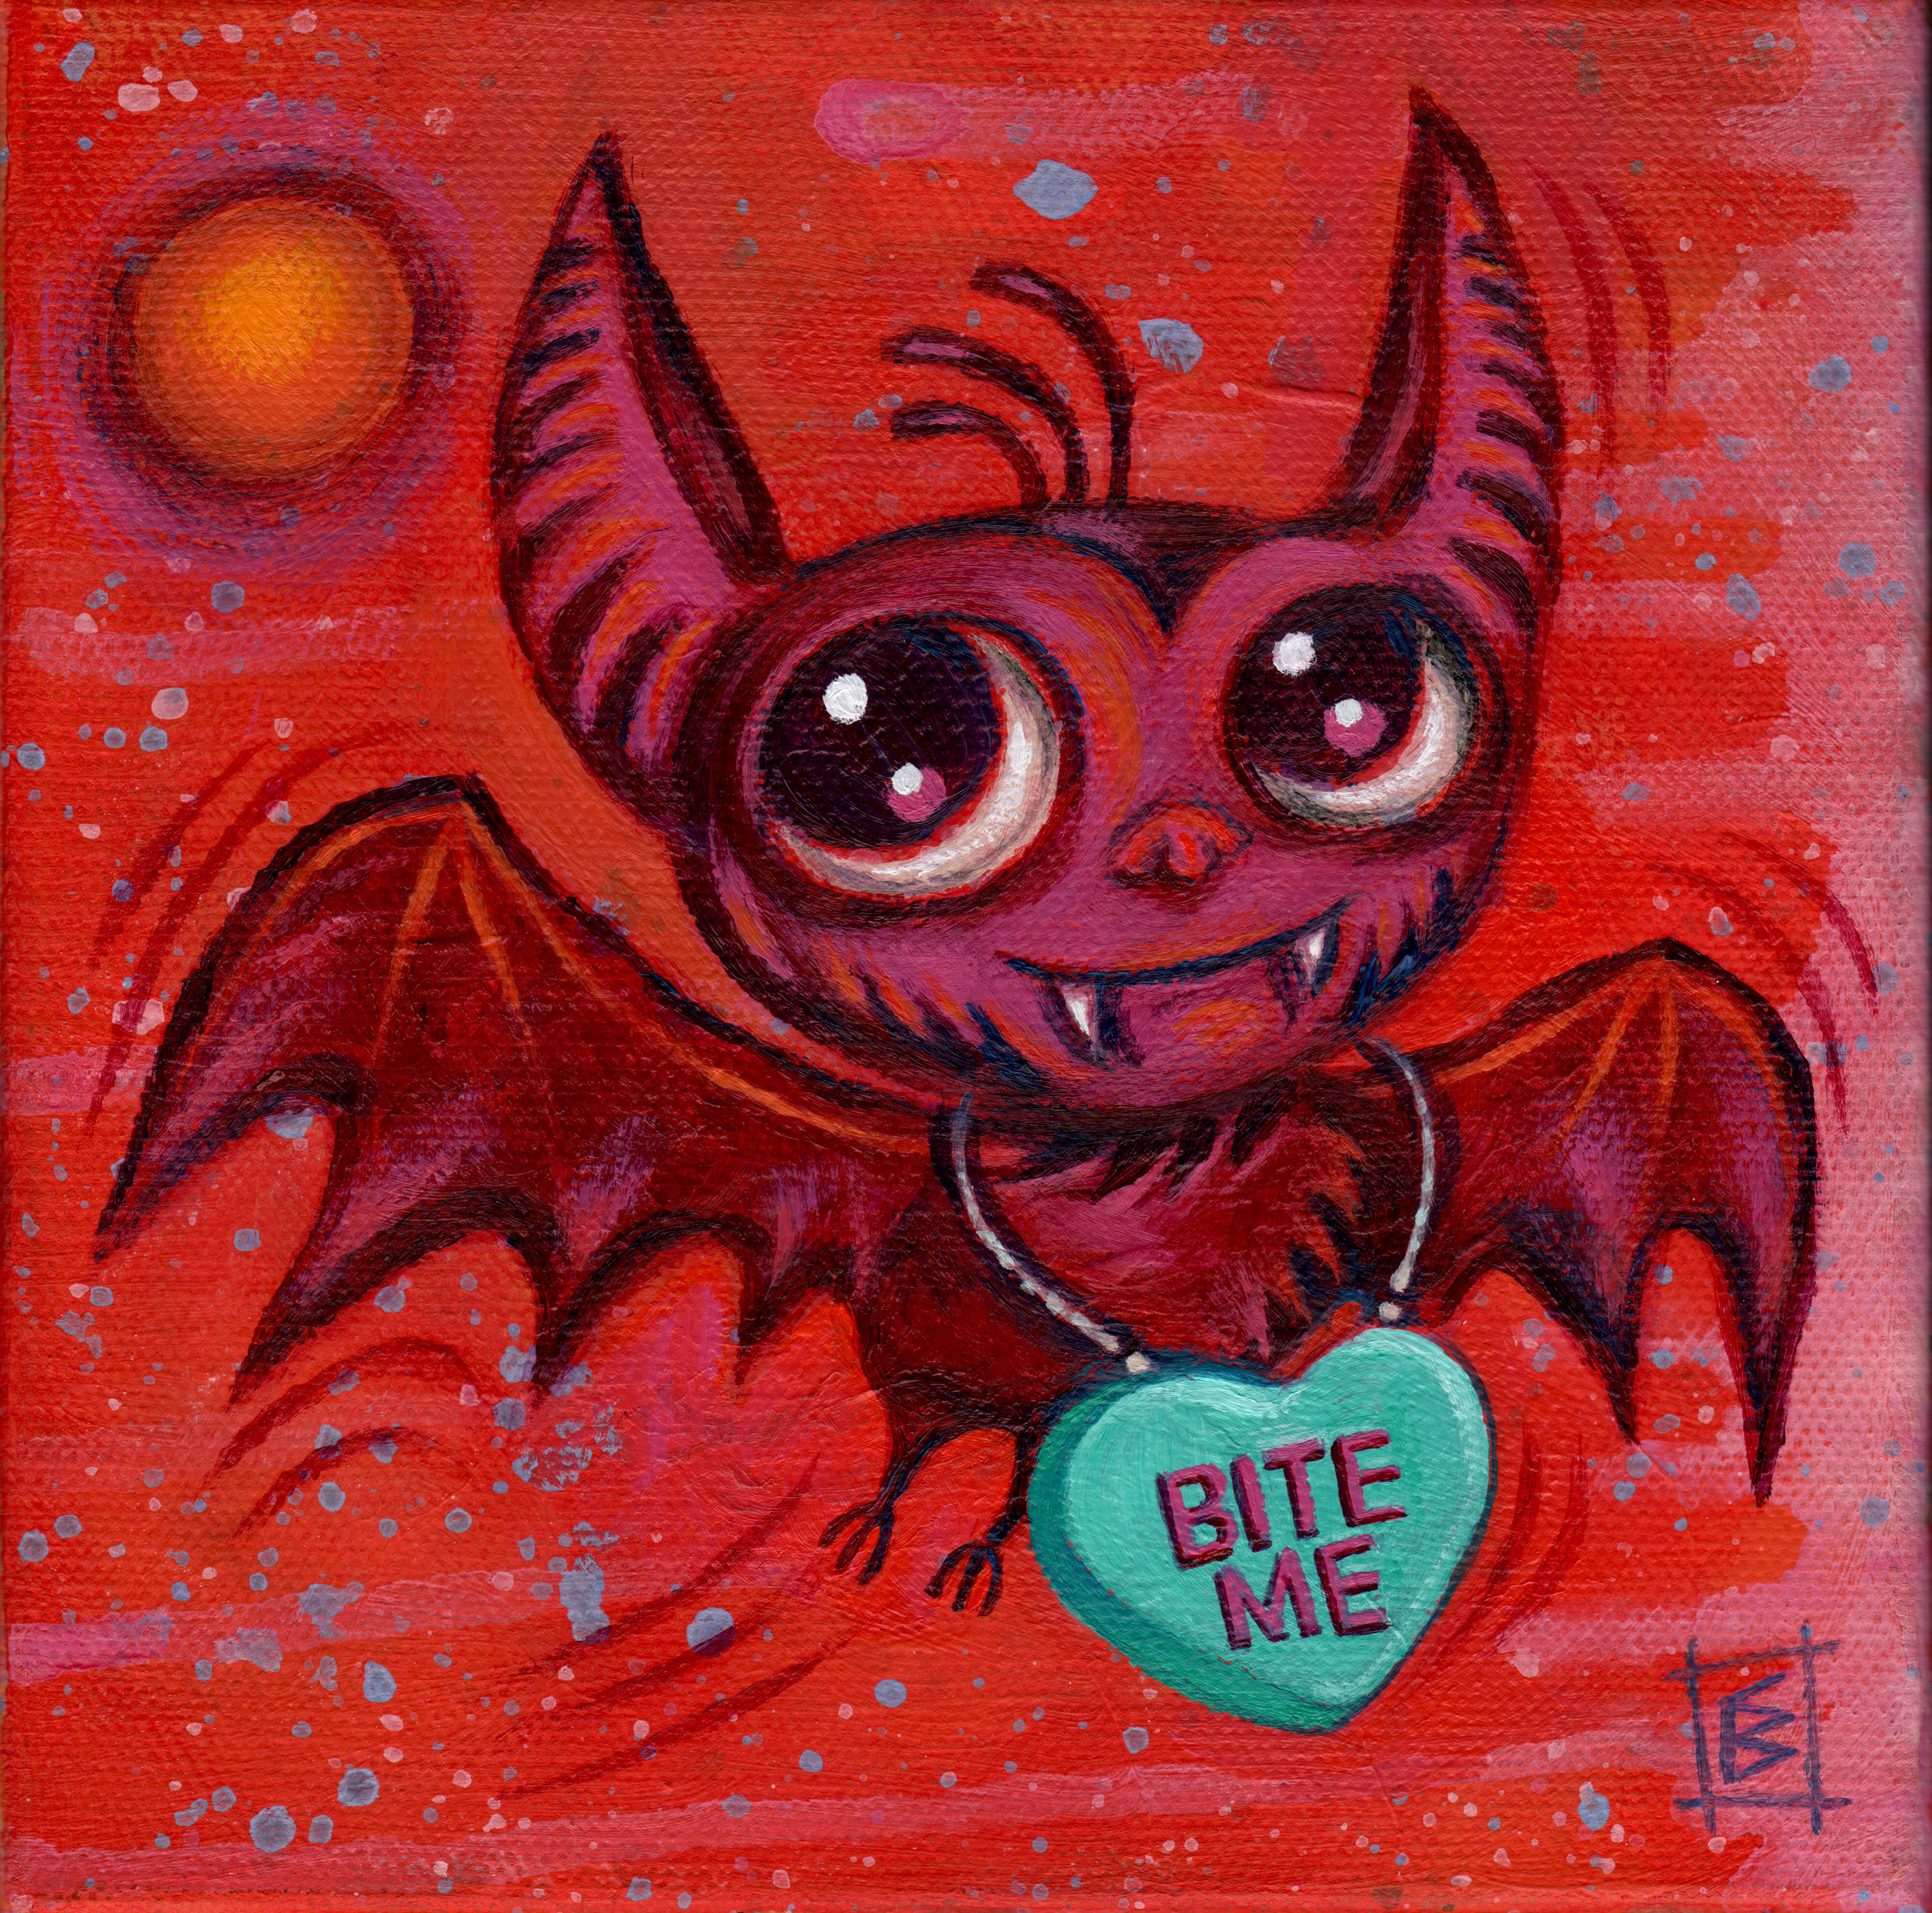 EVOL/LOVE    is a Valentine's Day themed group show at  Psycho Donuts  in Campbell CA and the show runs from February 1st to February 28th 2017.